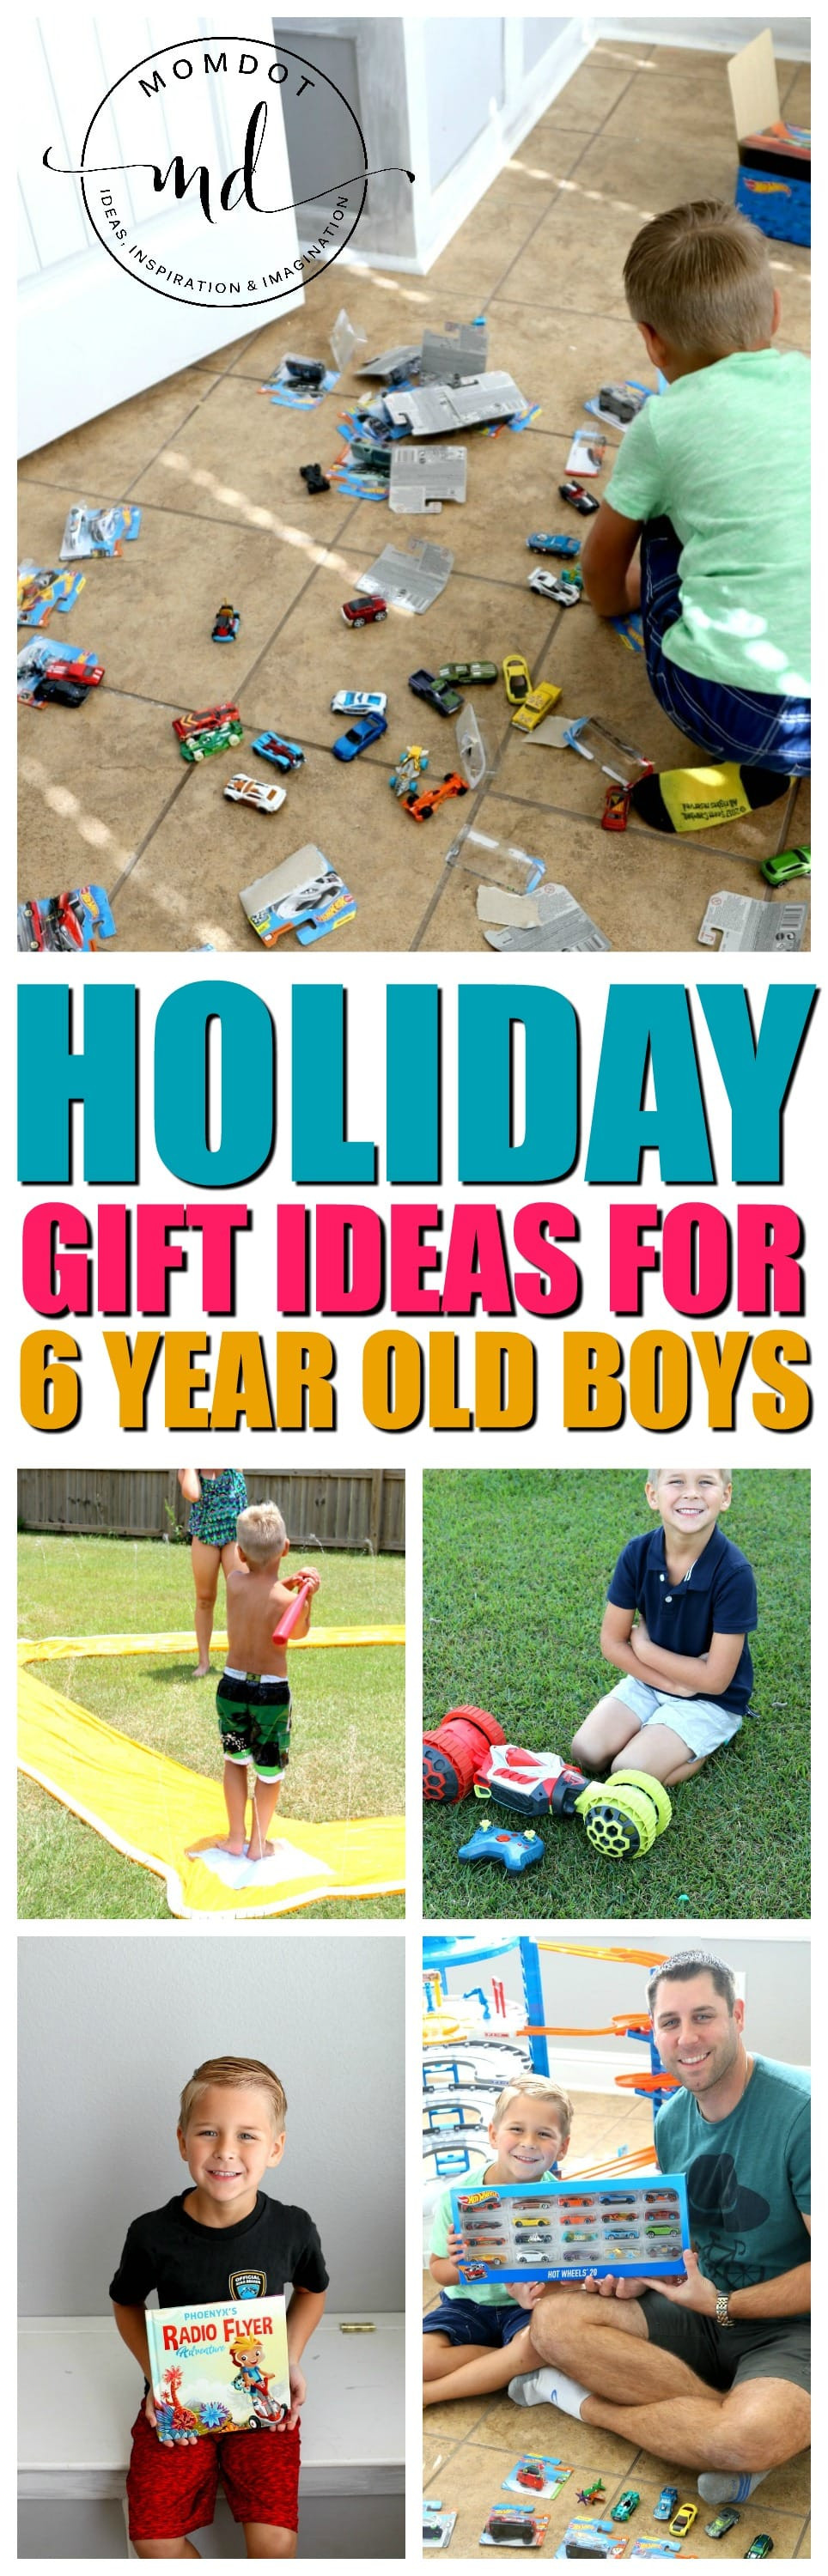 Best ideas about 6 Year Old Gift Ideas . Save or Pin Gift Ideas for 6 Year Old Boys Now.